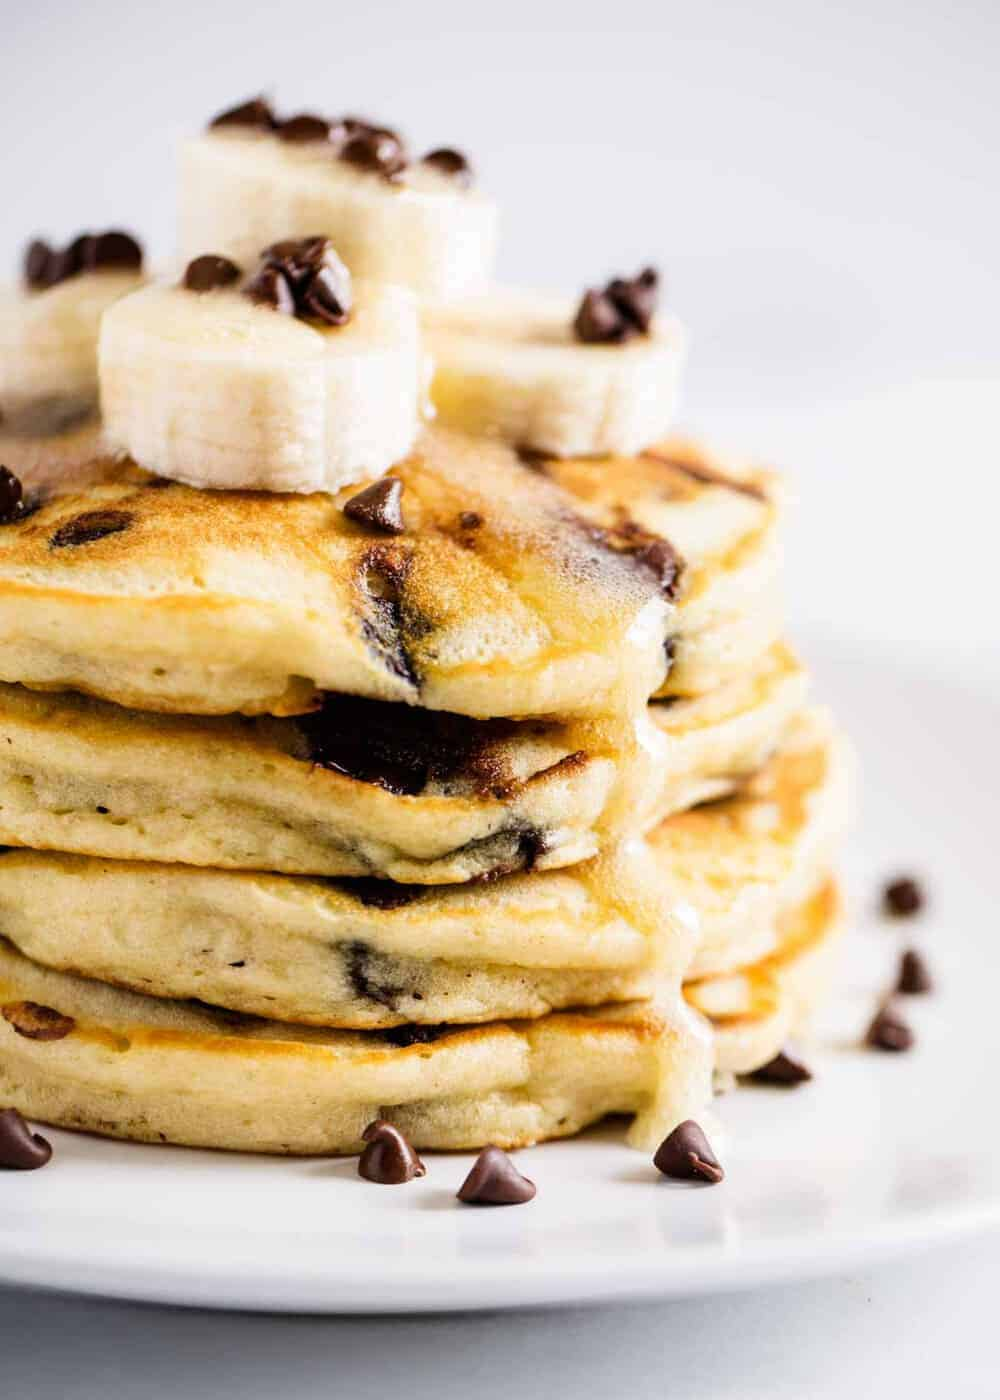 stack of chocolate chip pancakes topped with sliced bananas, chocolate chips and syrup